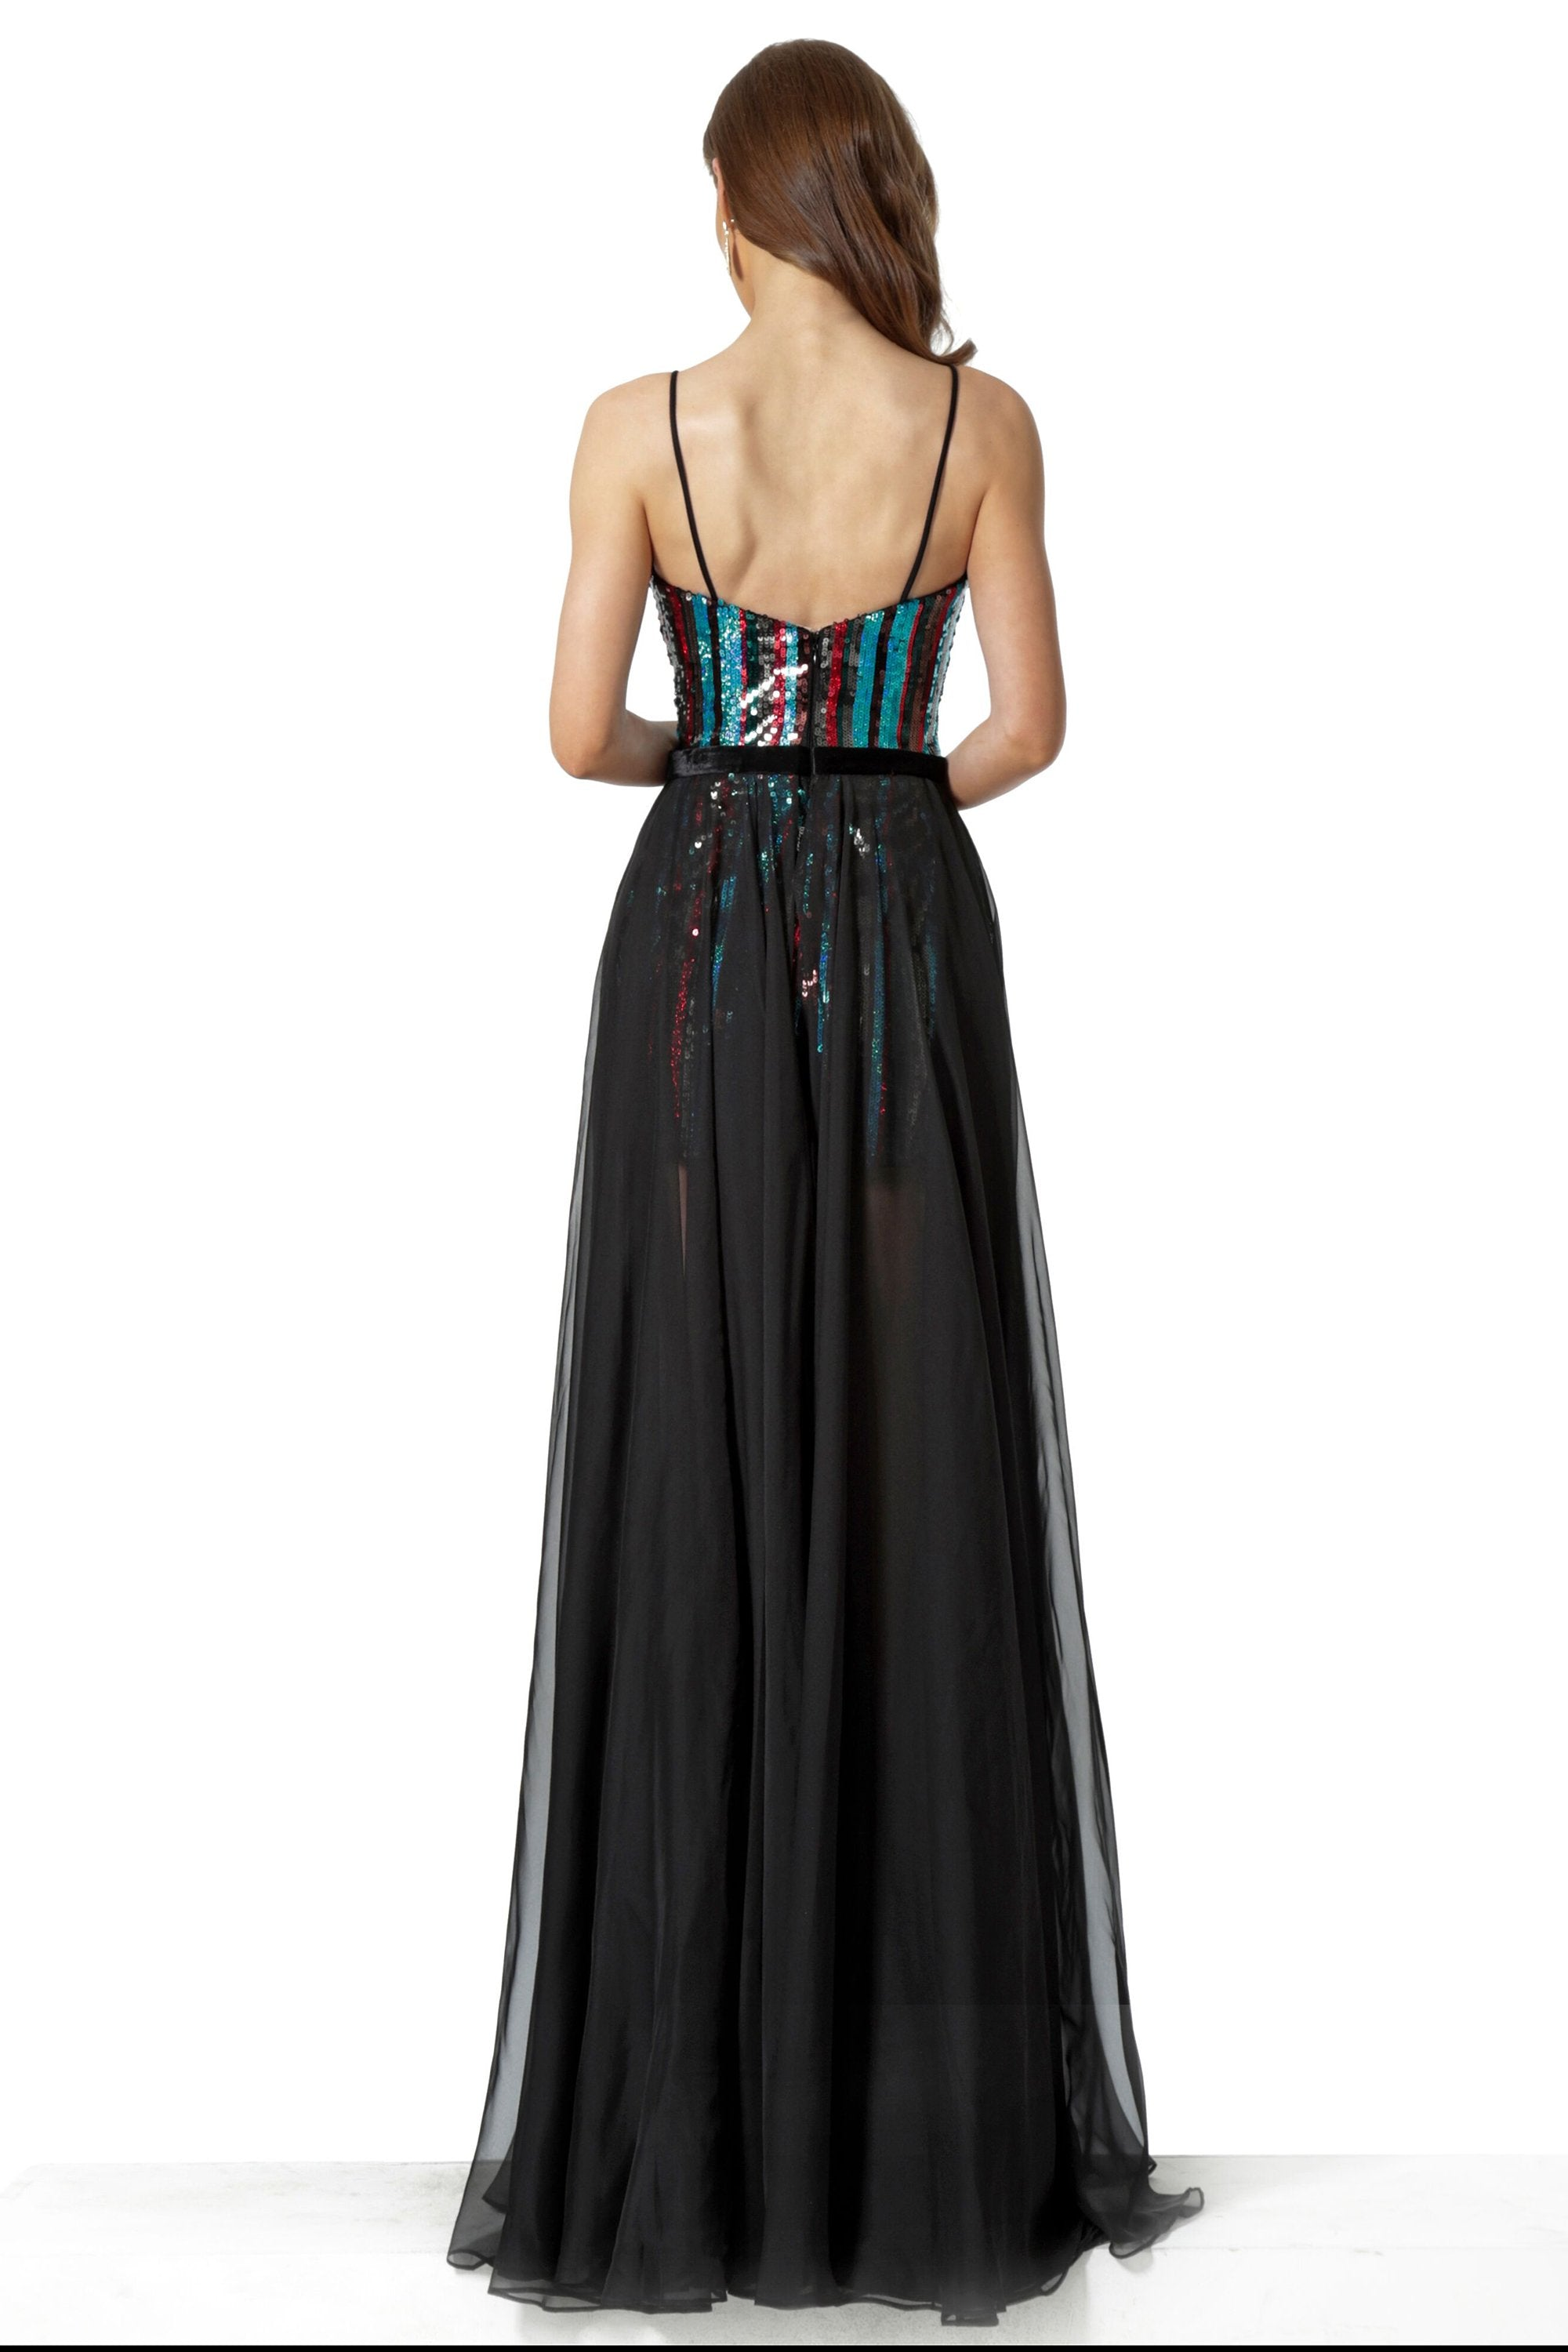 Jovani - 66297 Sequined Sweetheart A-line Dress In Black and Multi